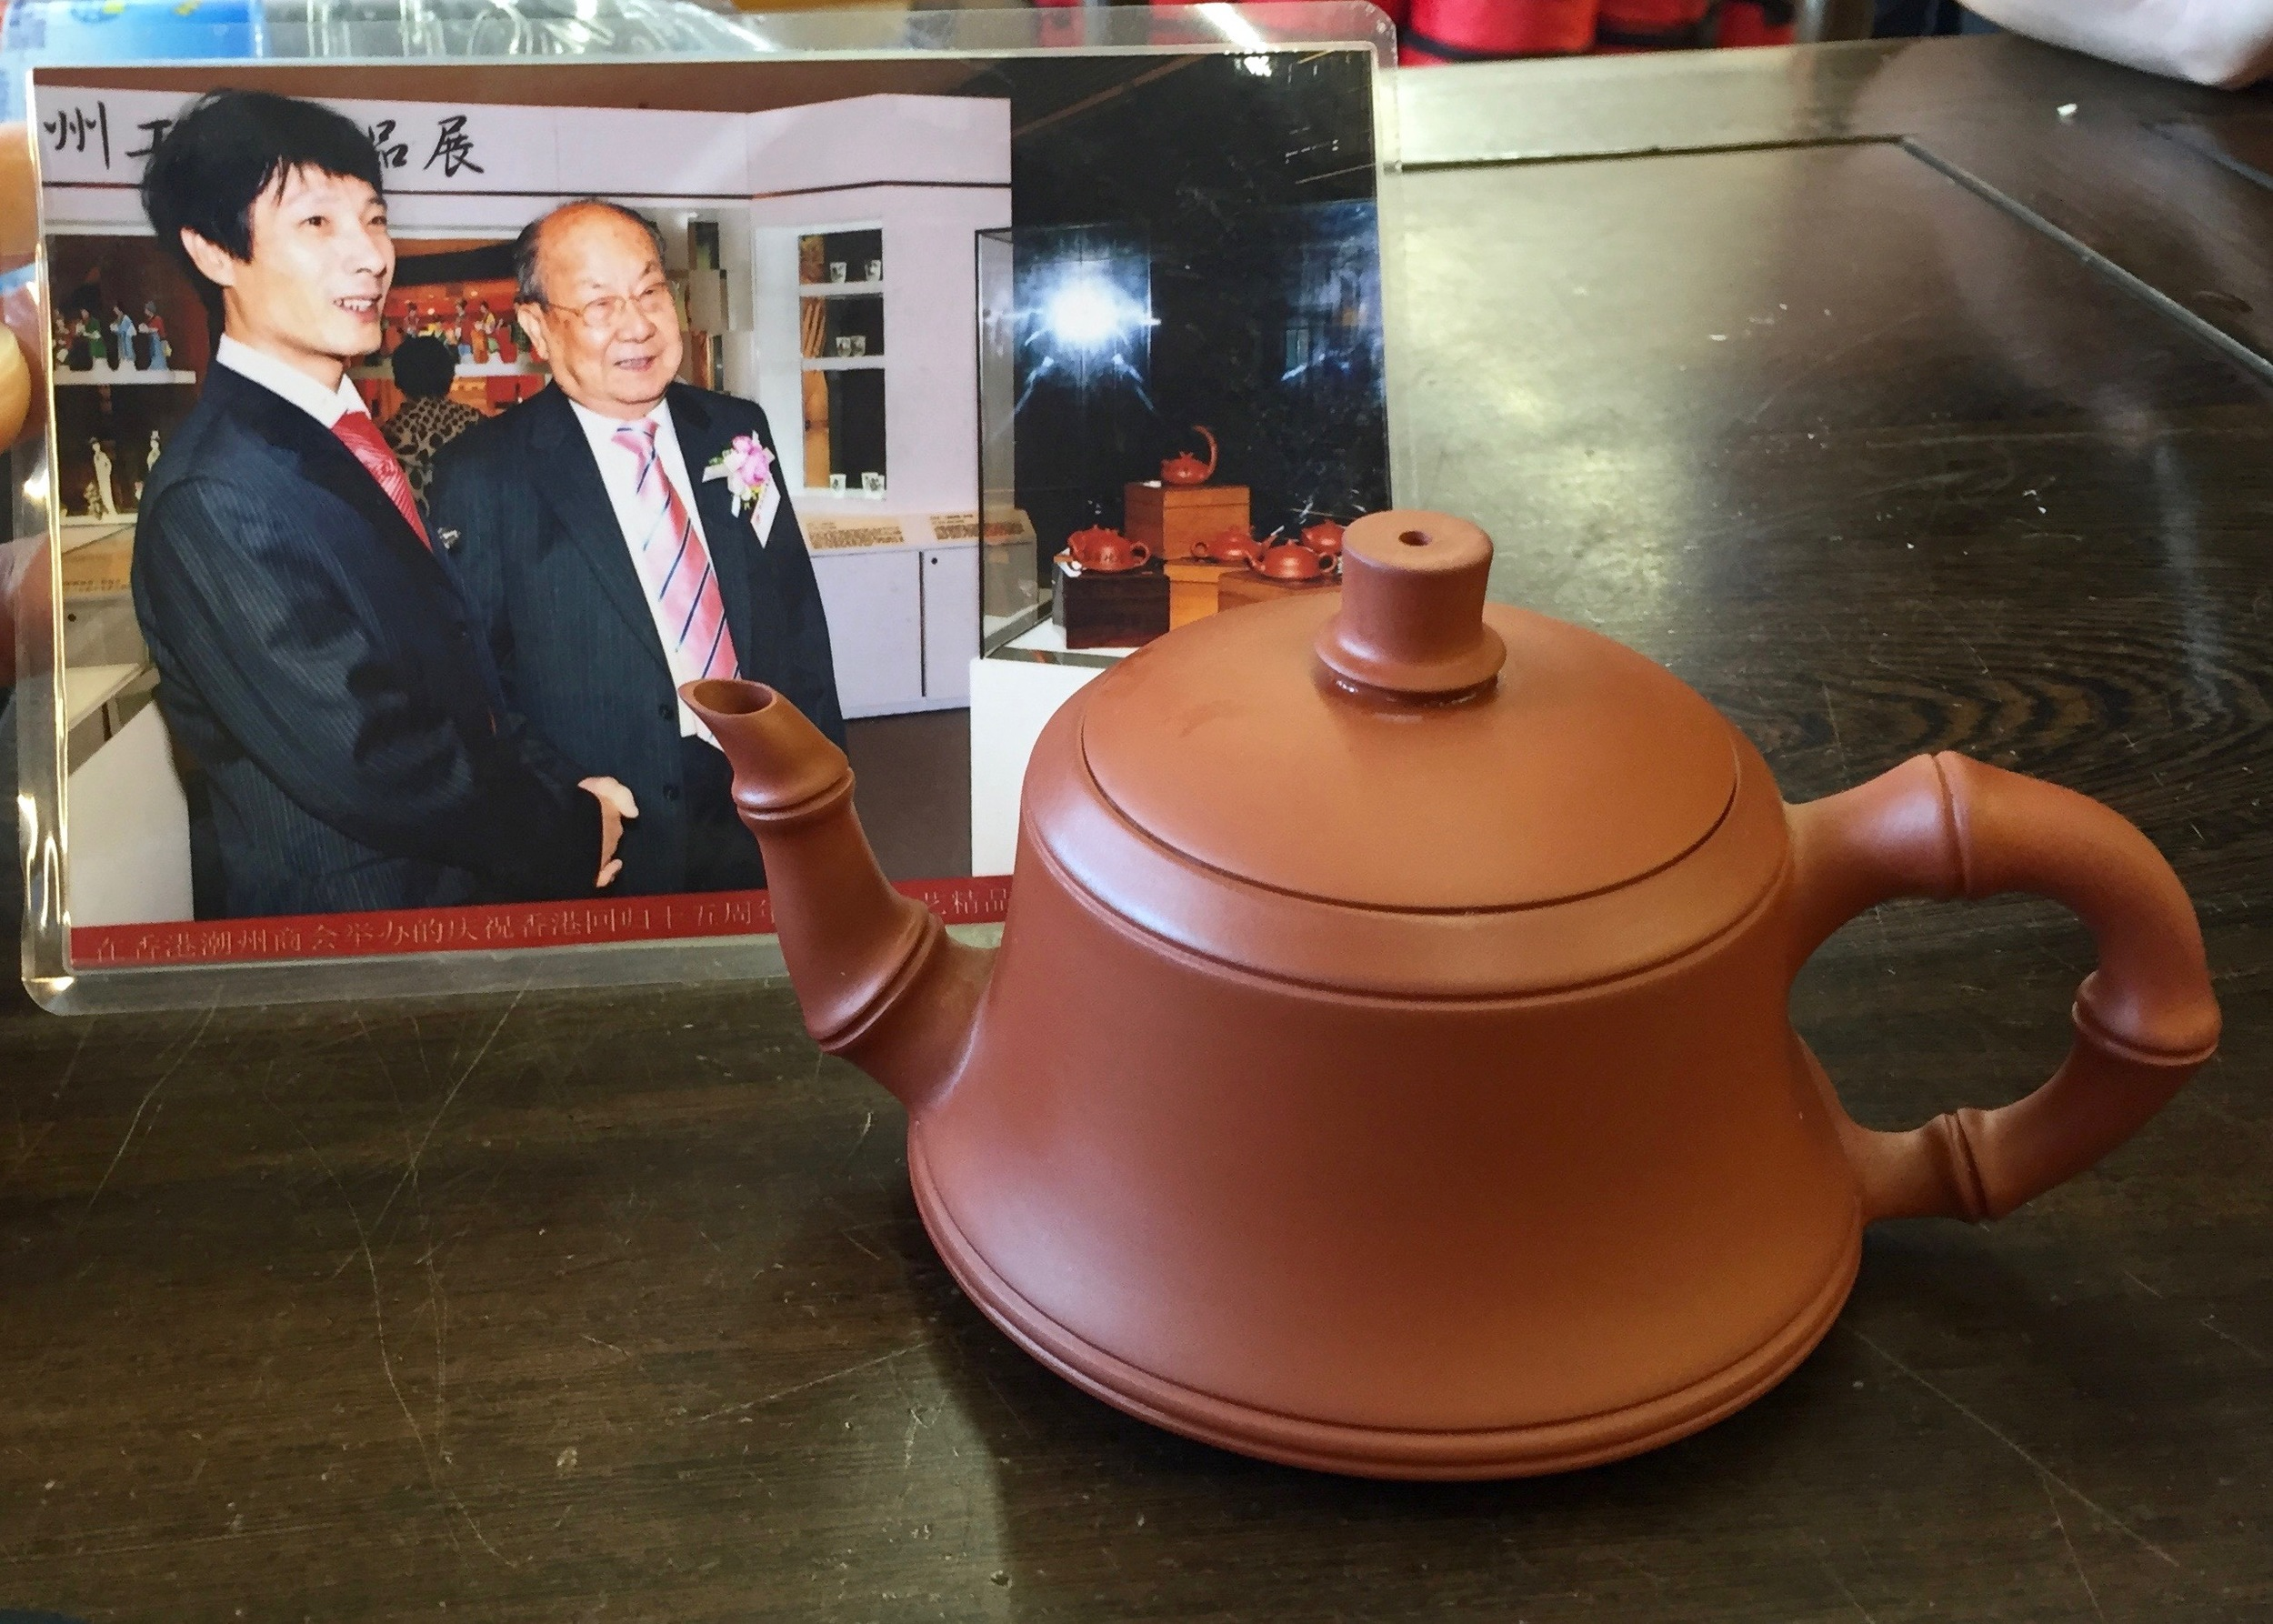 Here is the teapot I purchased. The artist is the man on the left.